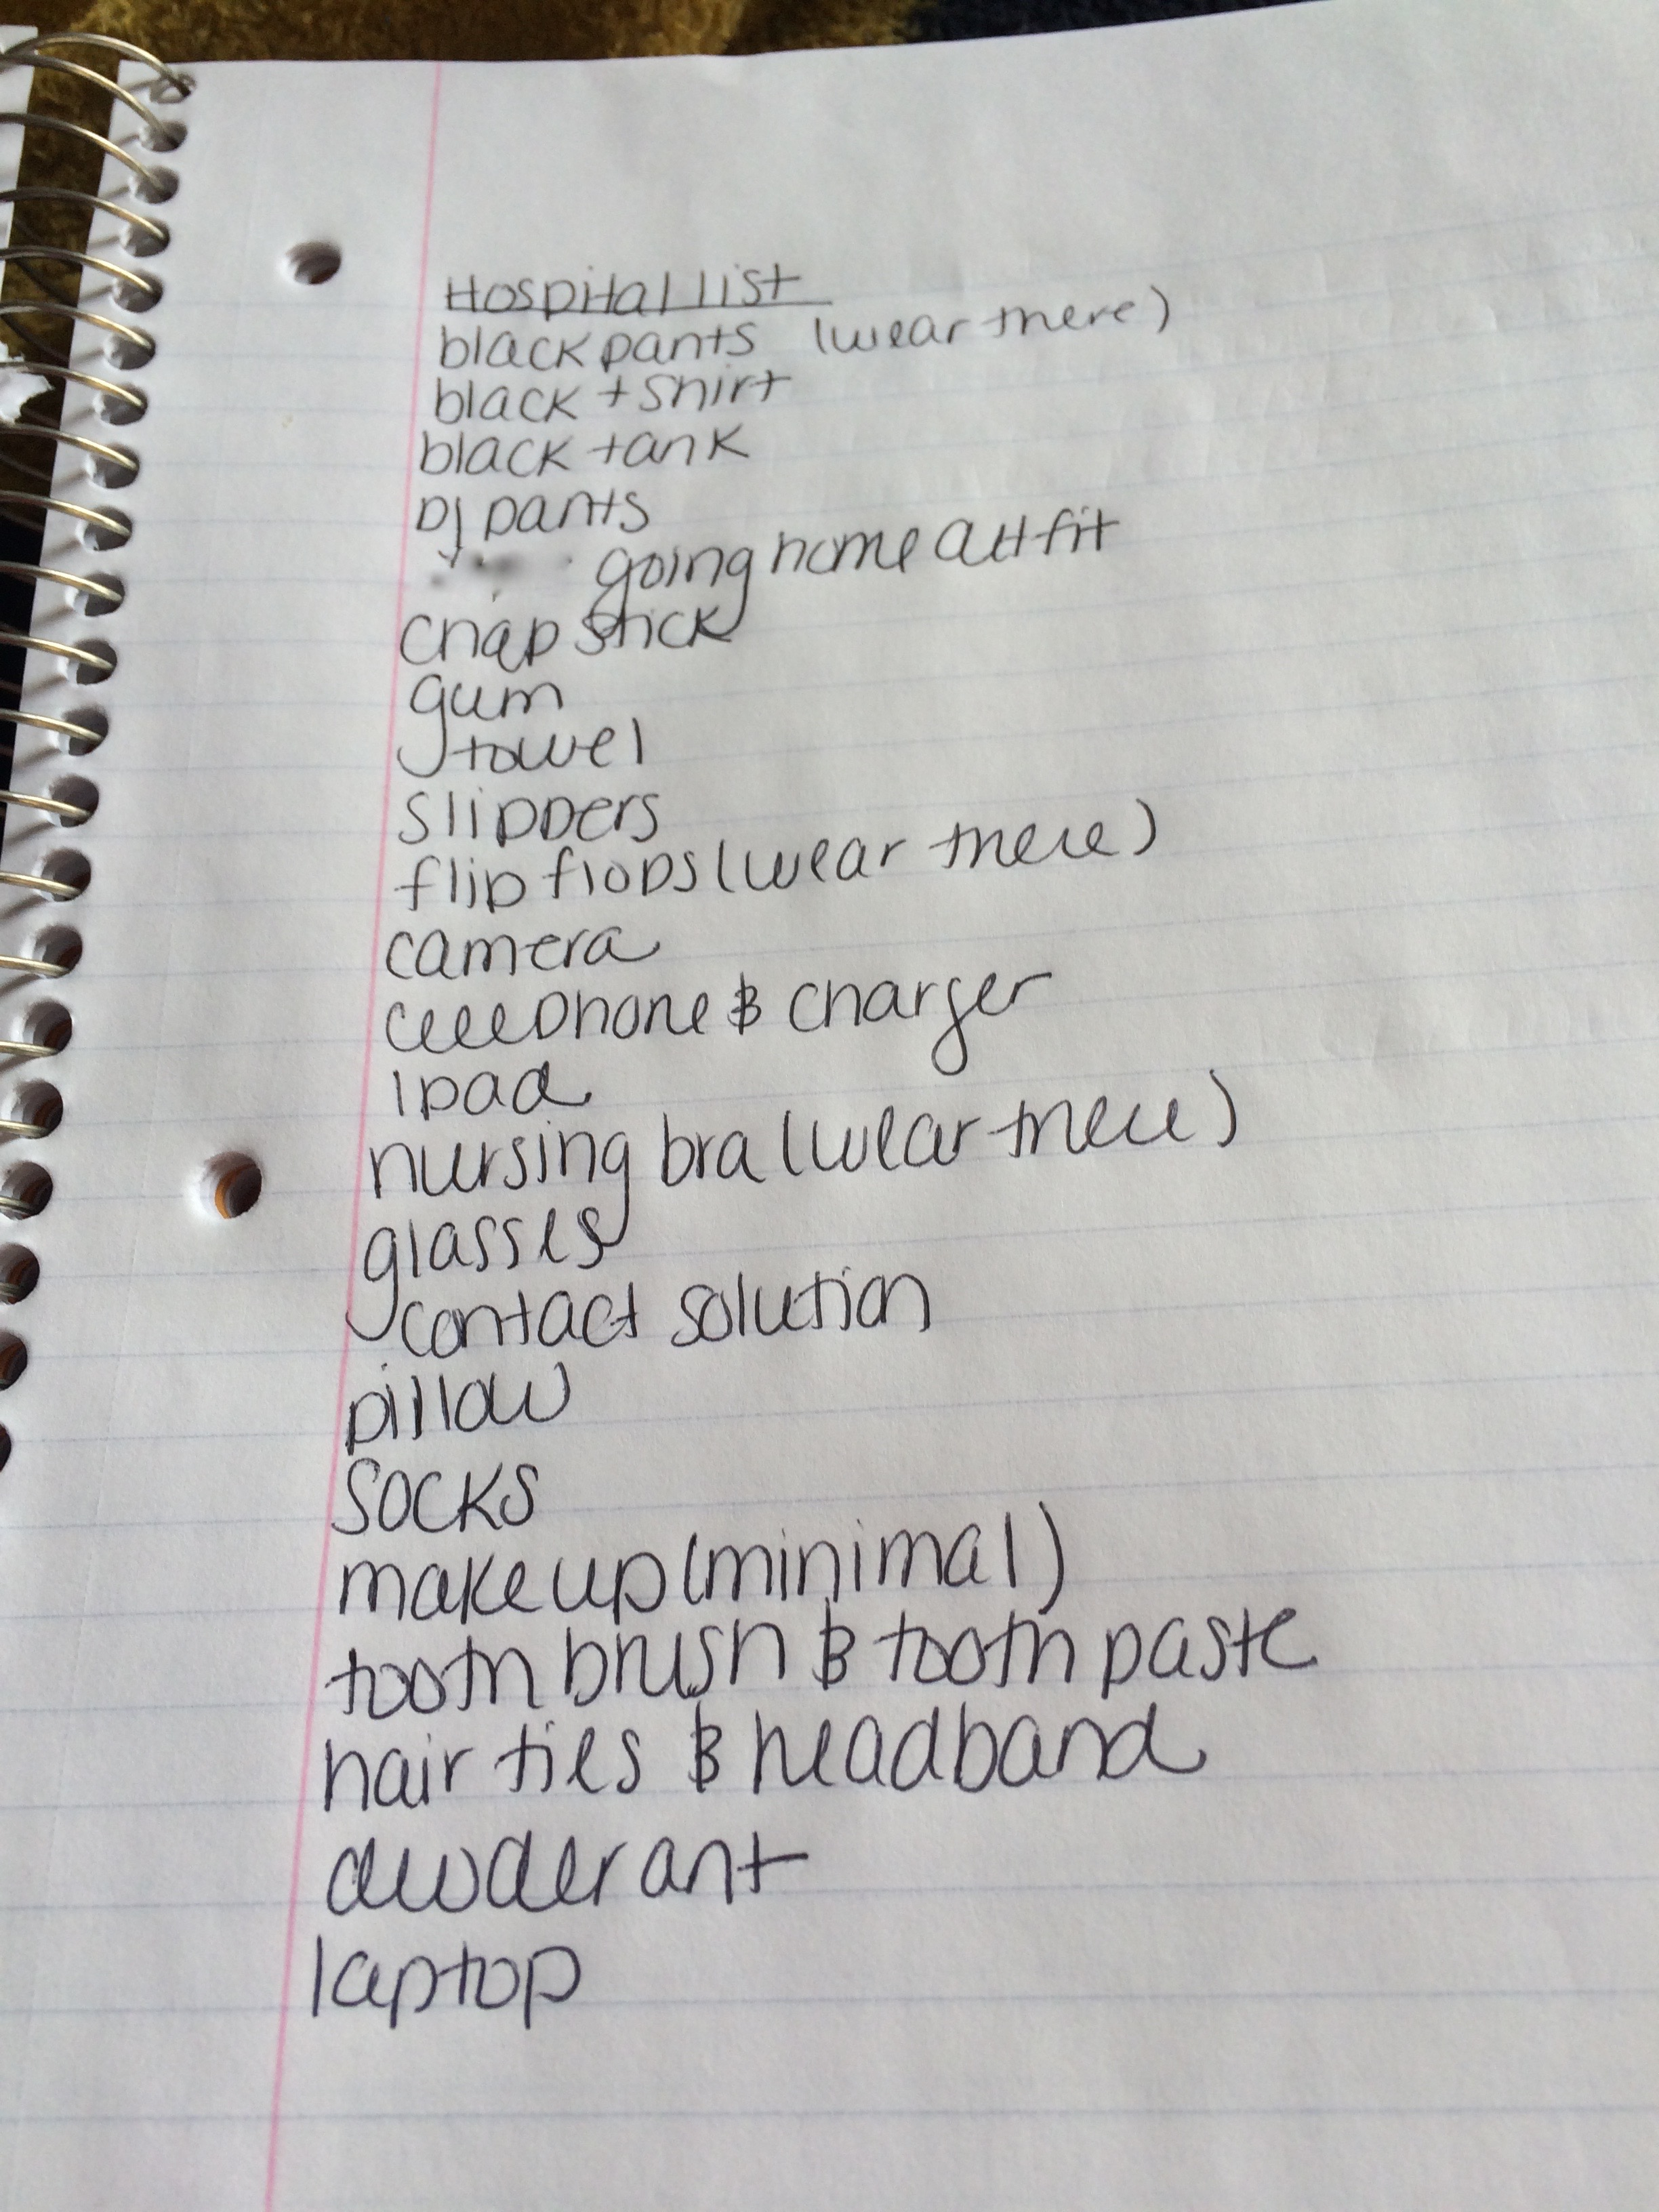 Baby Hospital Packing list